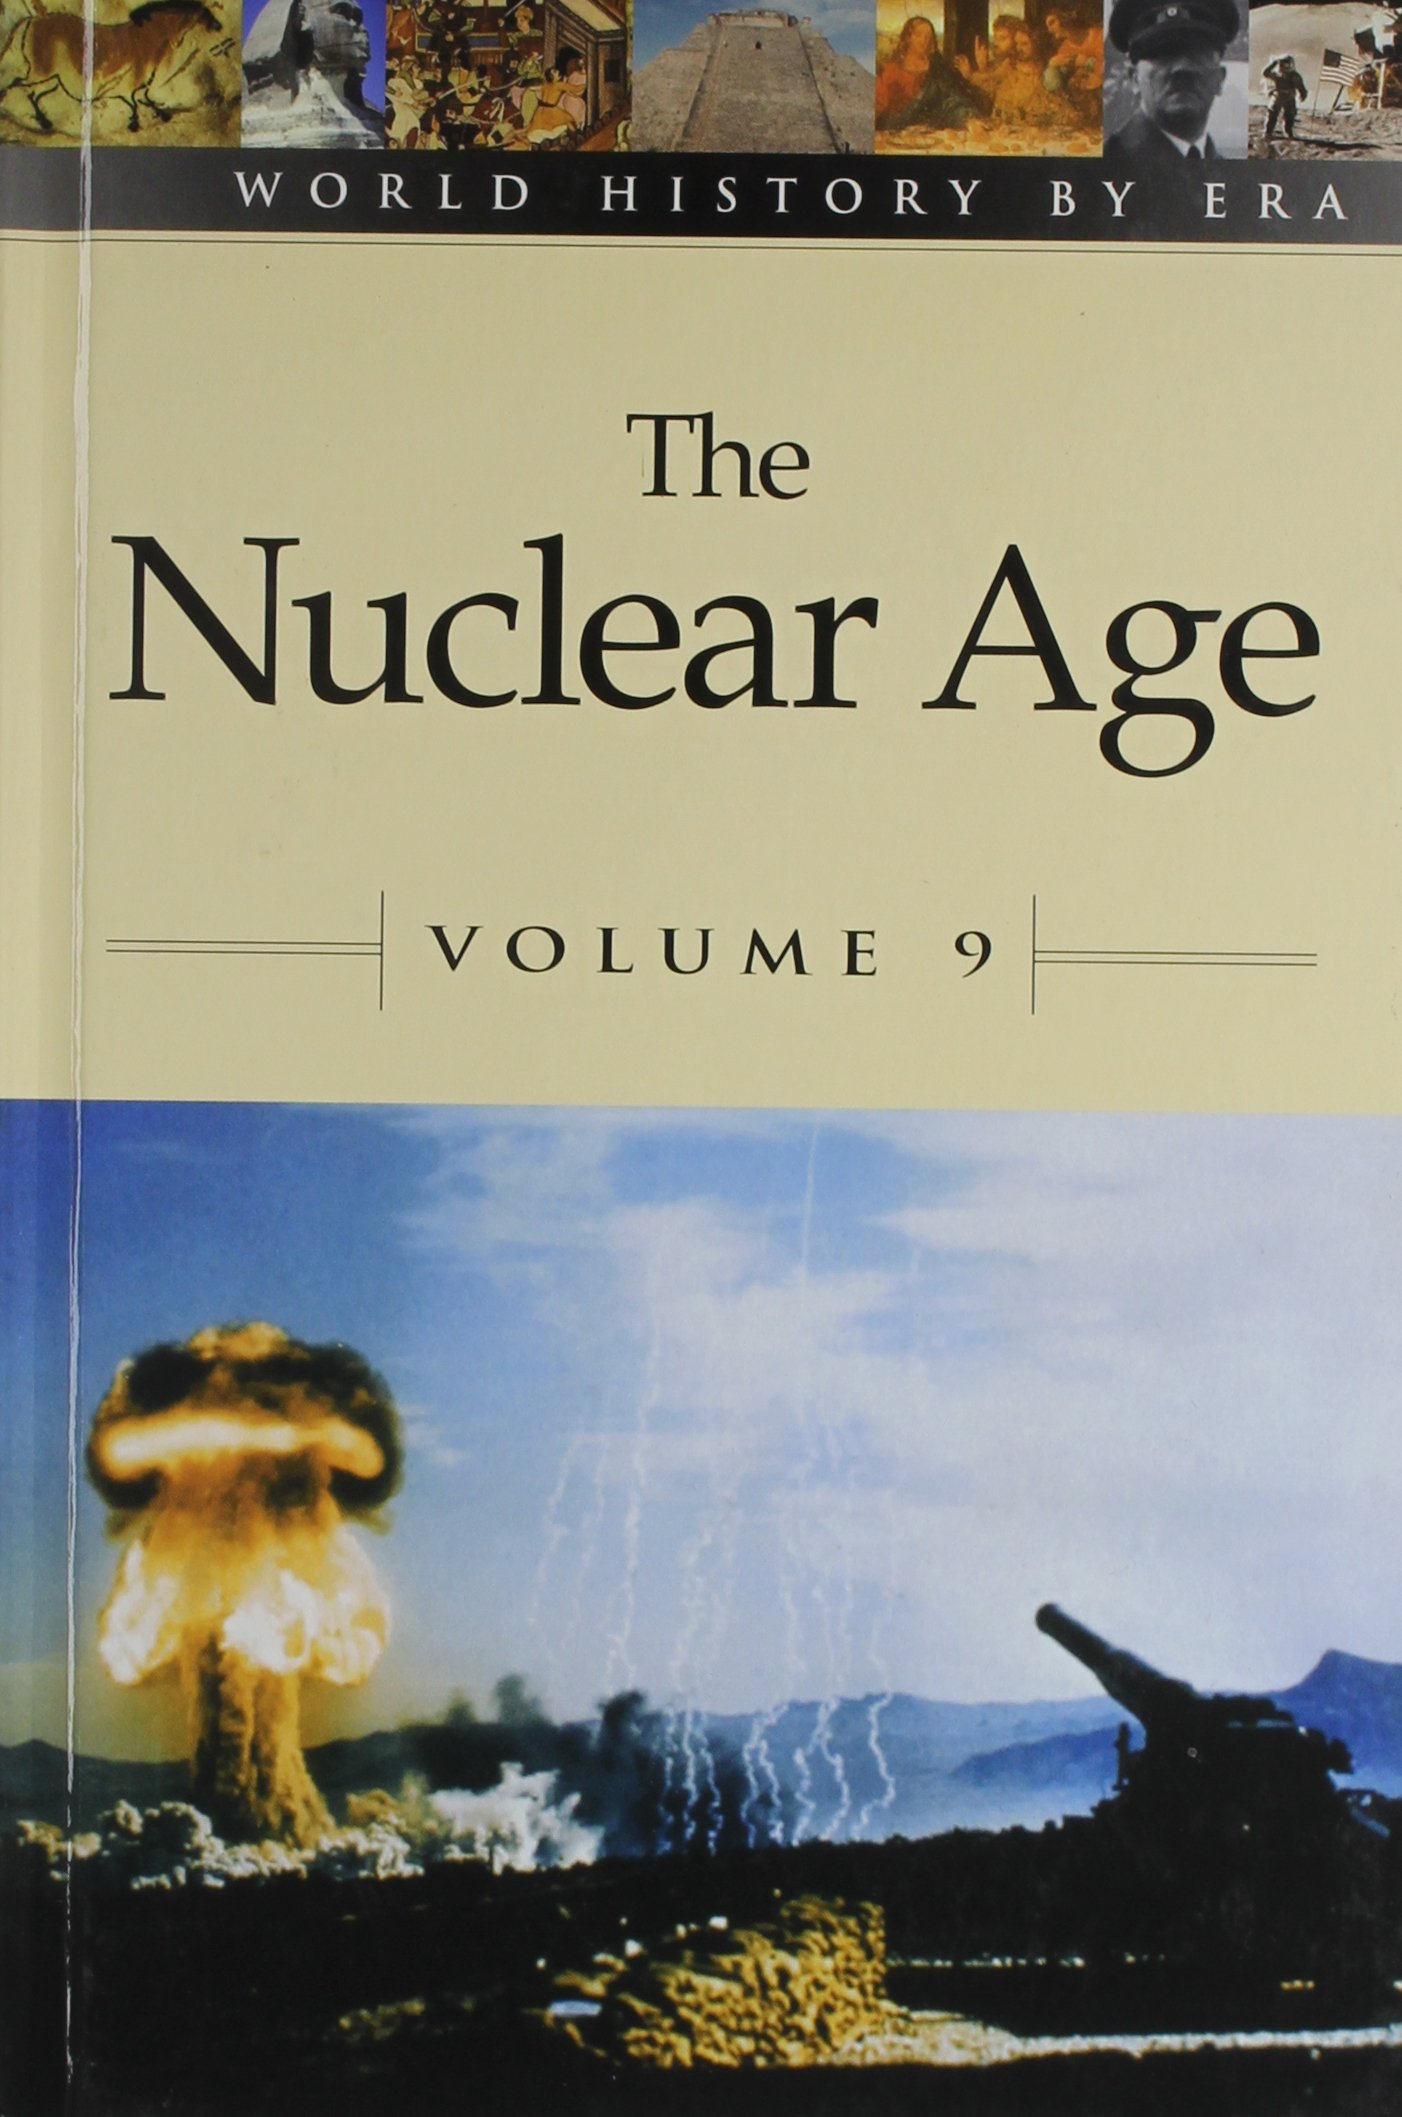 Read Online World History by Era - Vol. 9 The Nuclear Age (hardcover edition) ebook